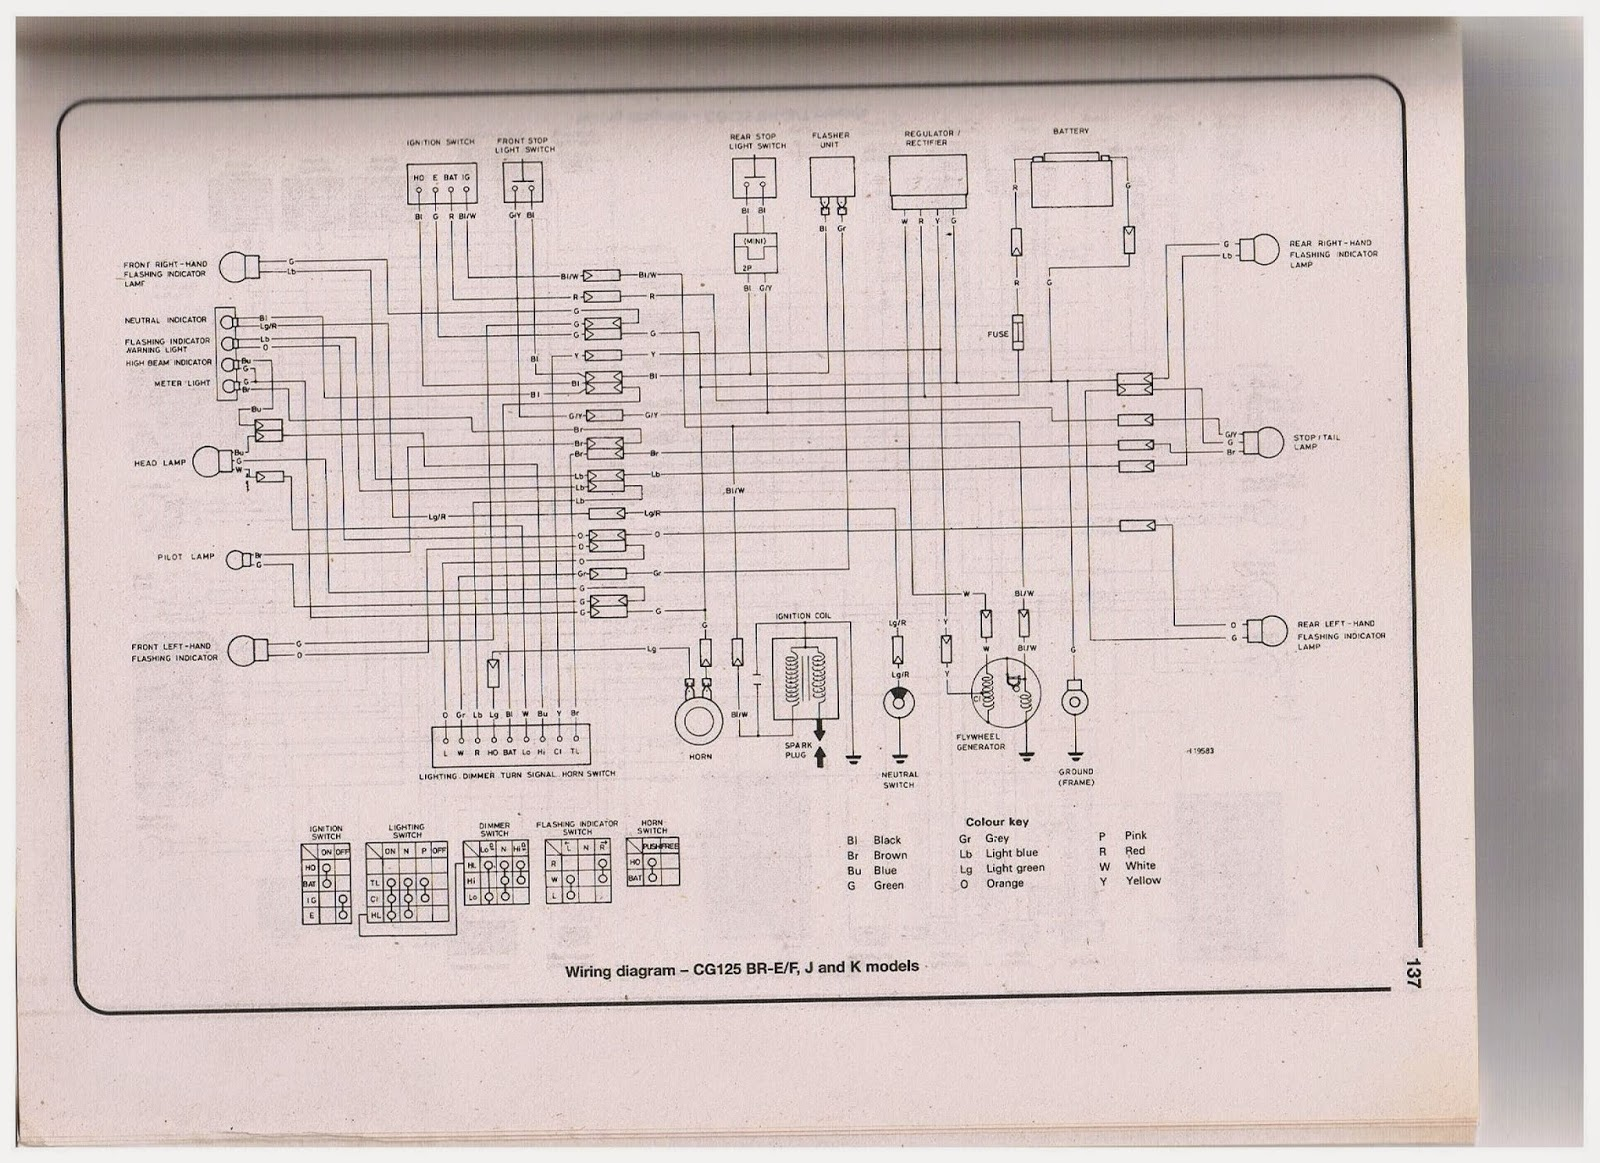 small resolution of honda cg 125 owner blog honda cg 125 wiring diagrams andhonda cg125 br s t models wiring